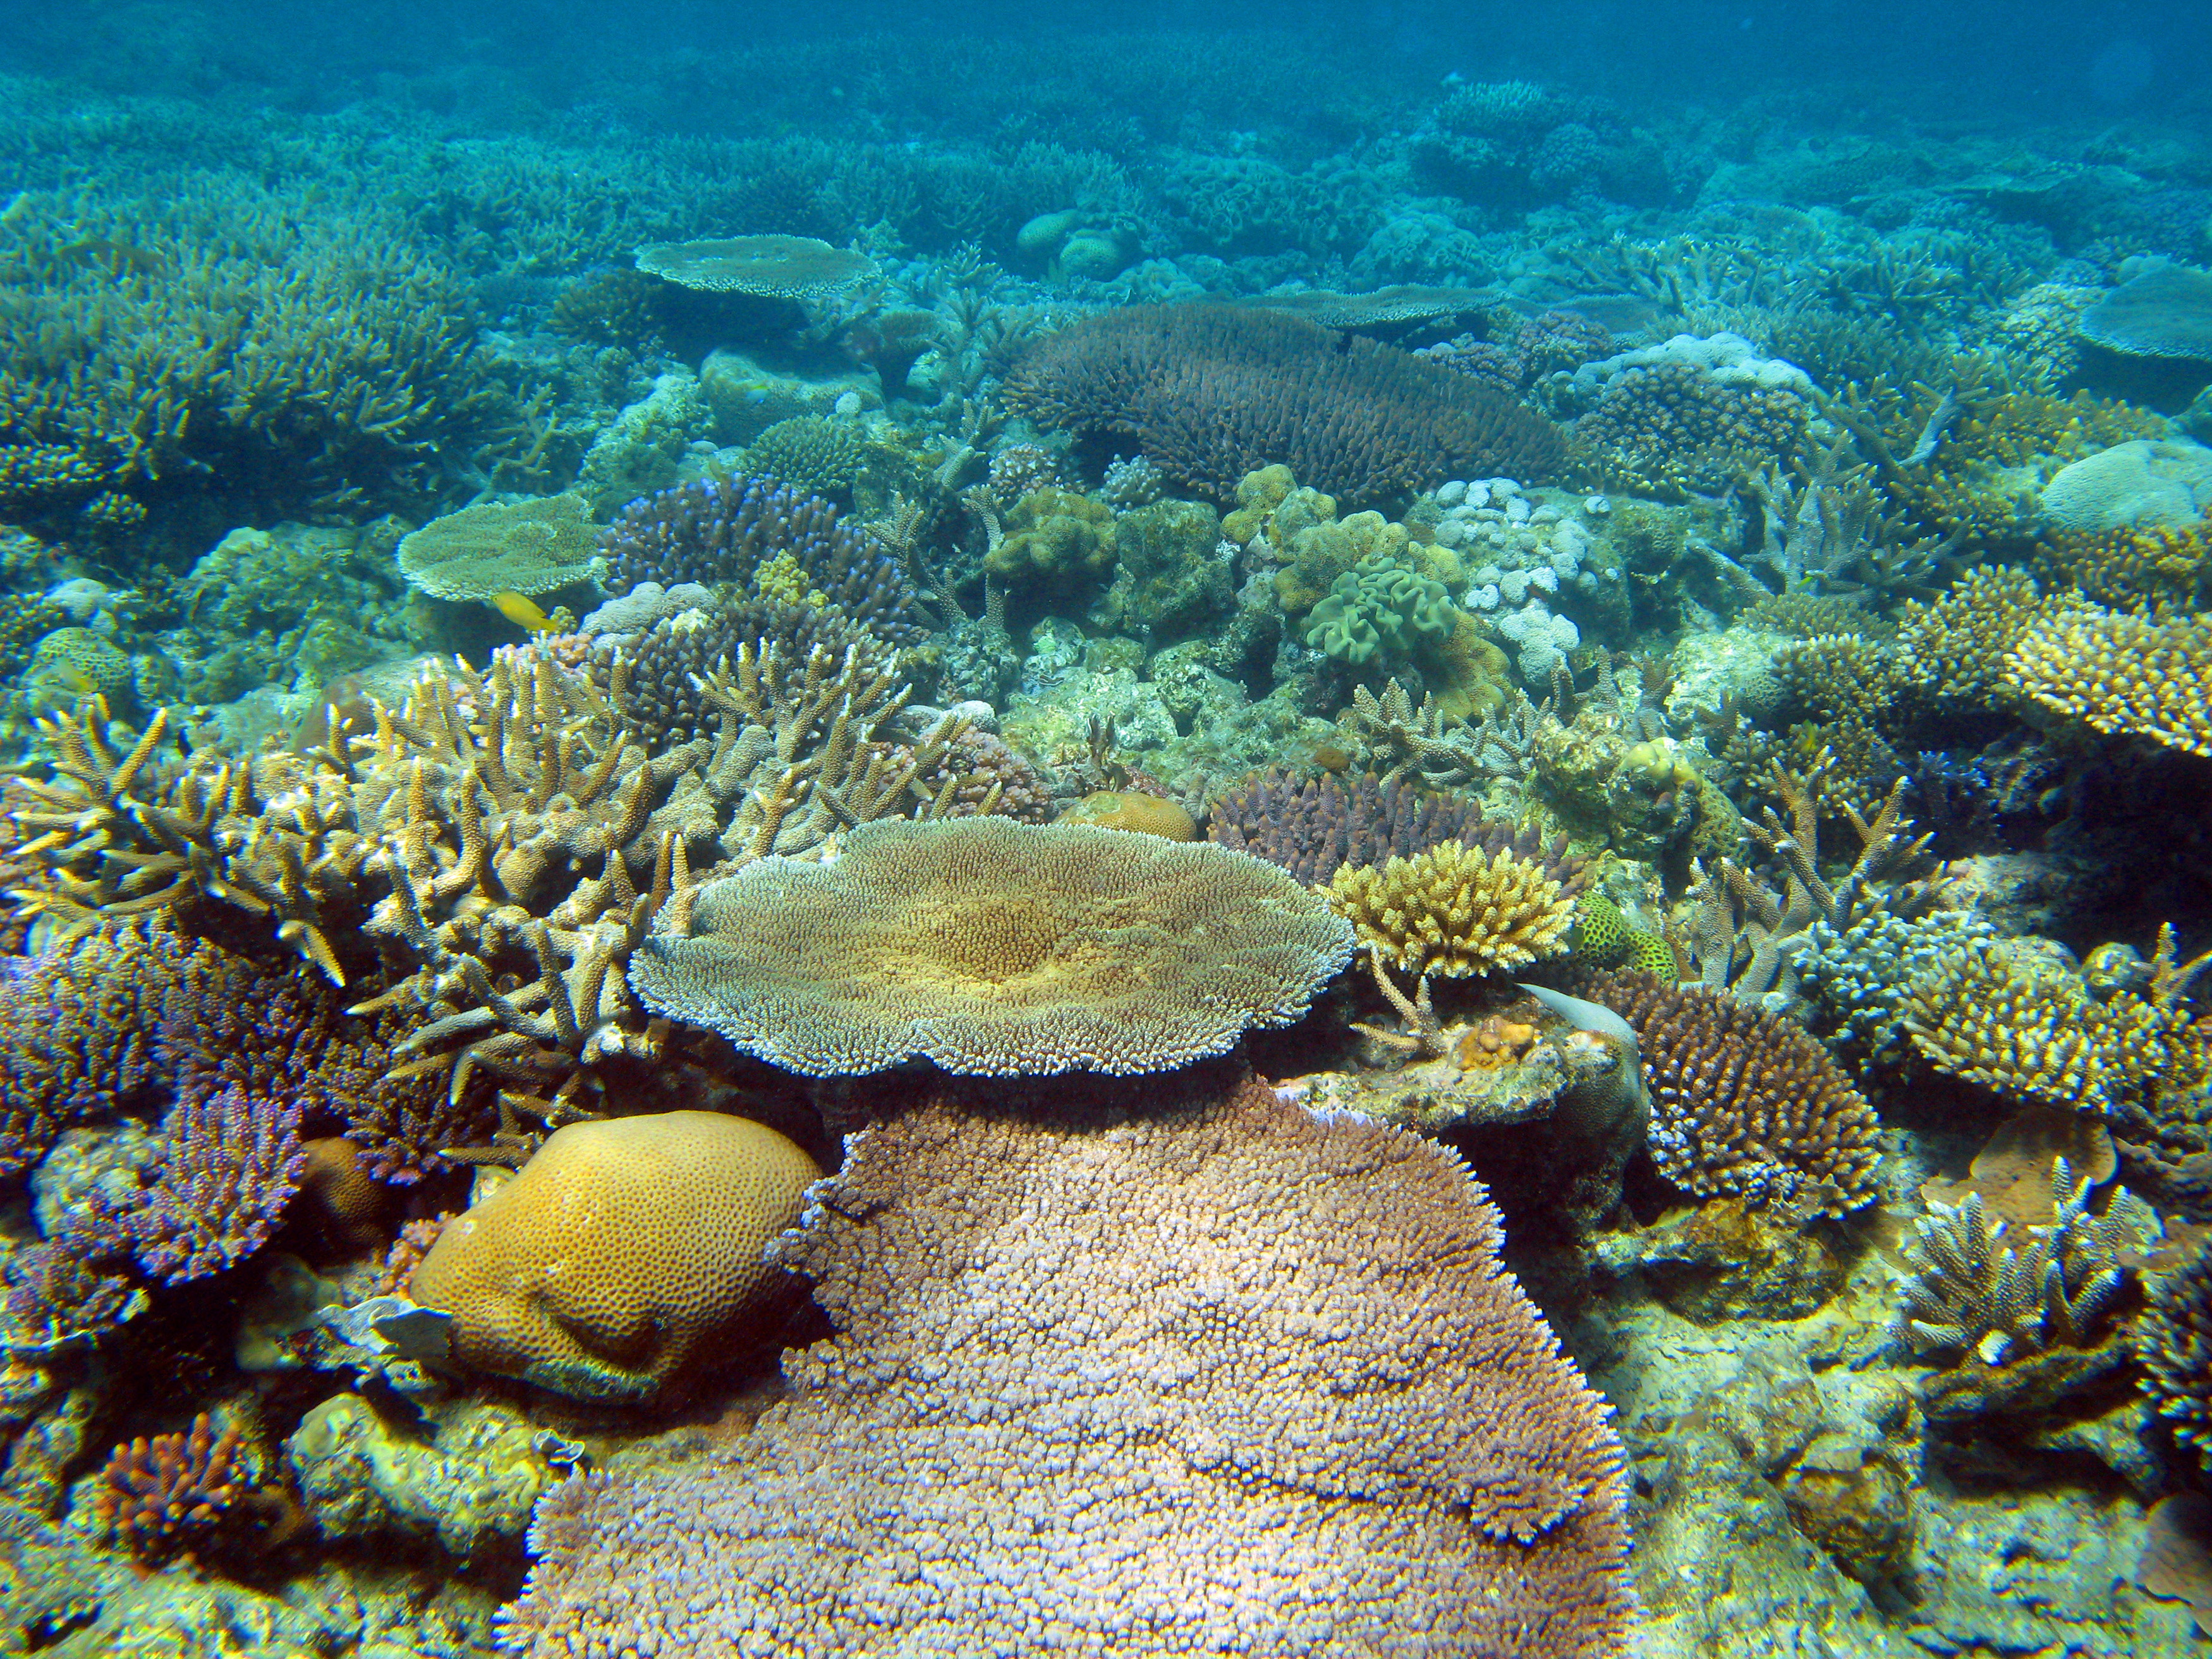 a coral garden of assorted corals in shallow water on a reef